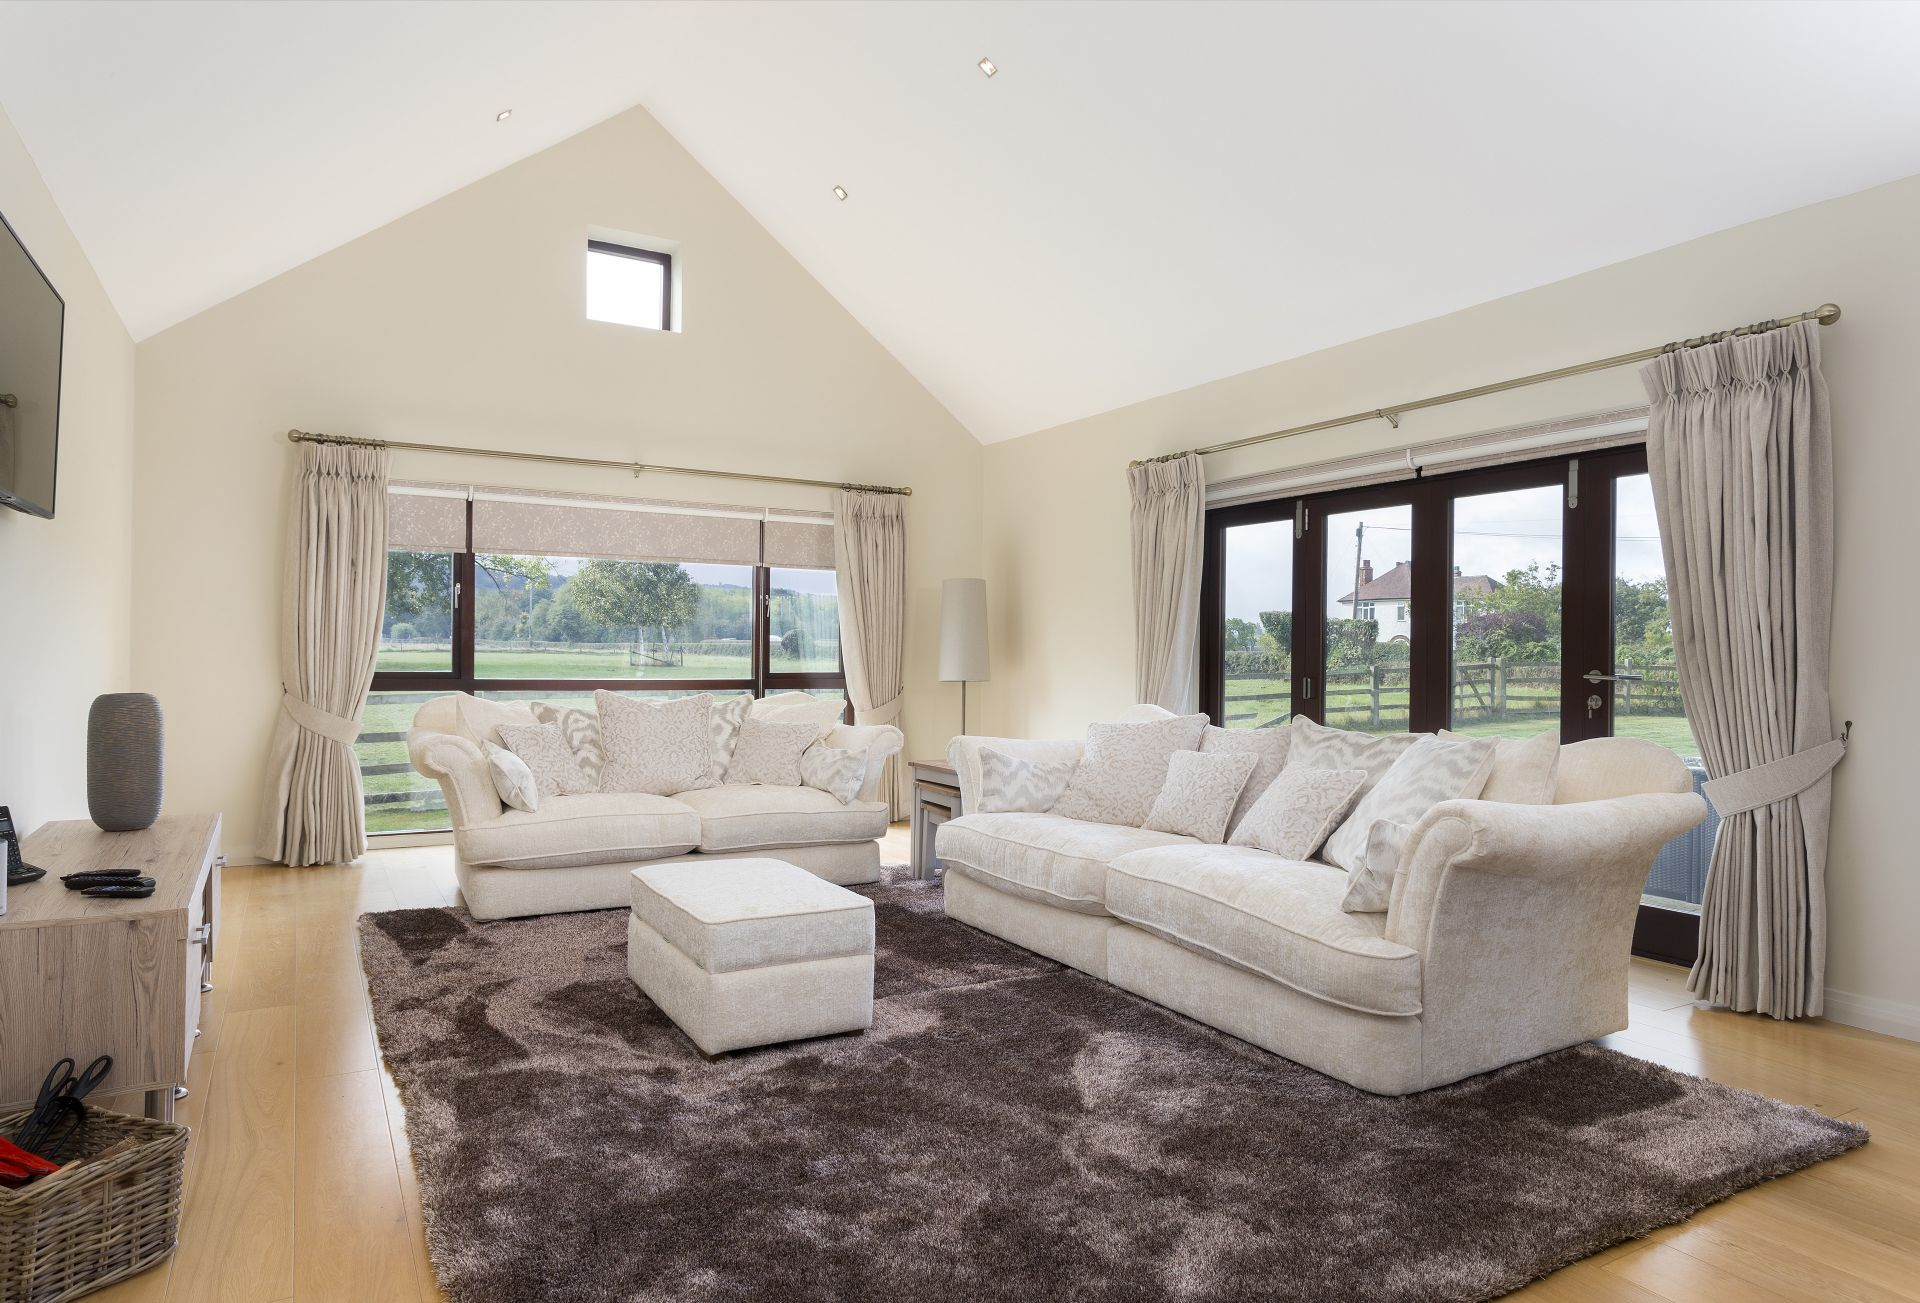 Ground floor: Panoramic views across the countryside from the spacious sitting room